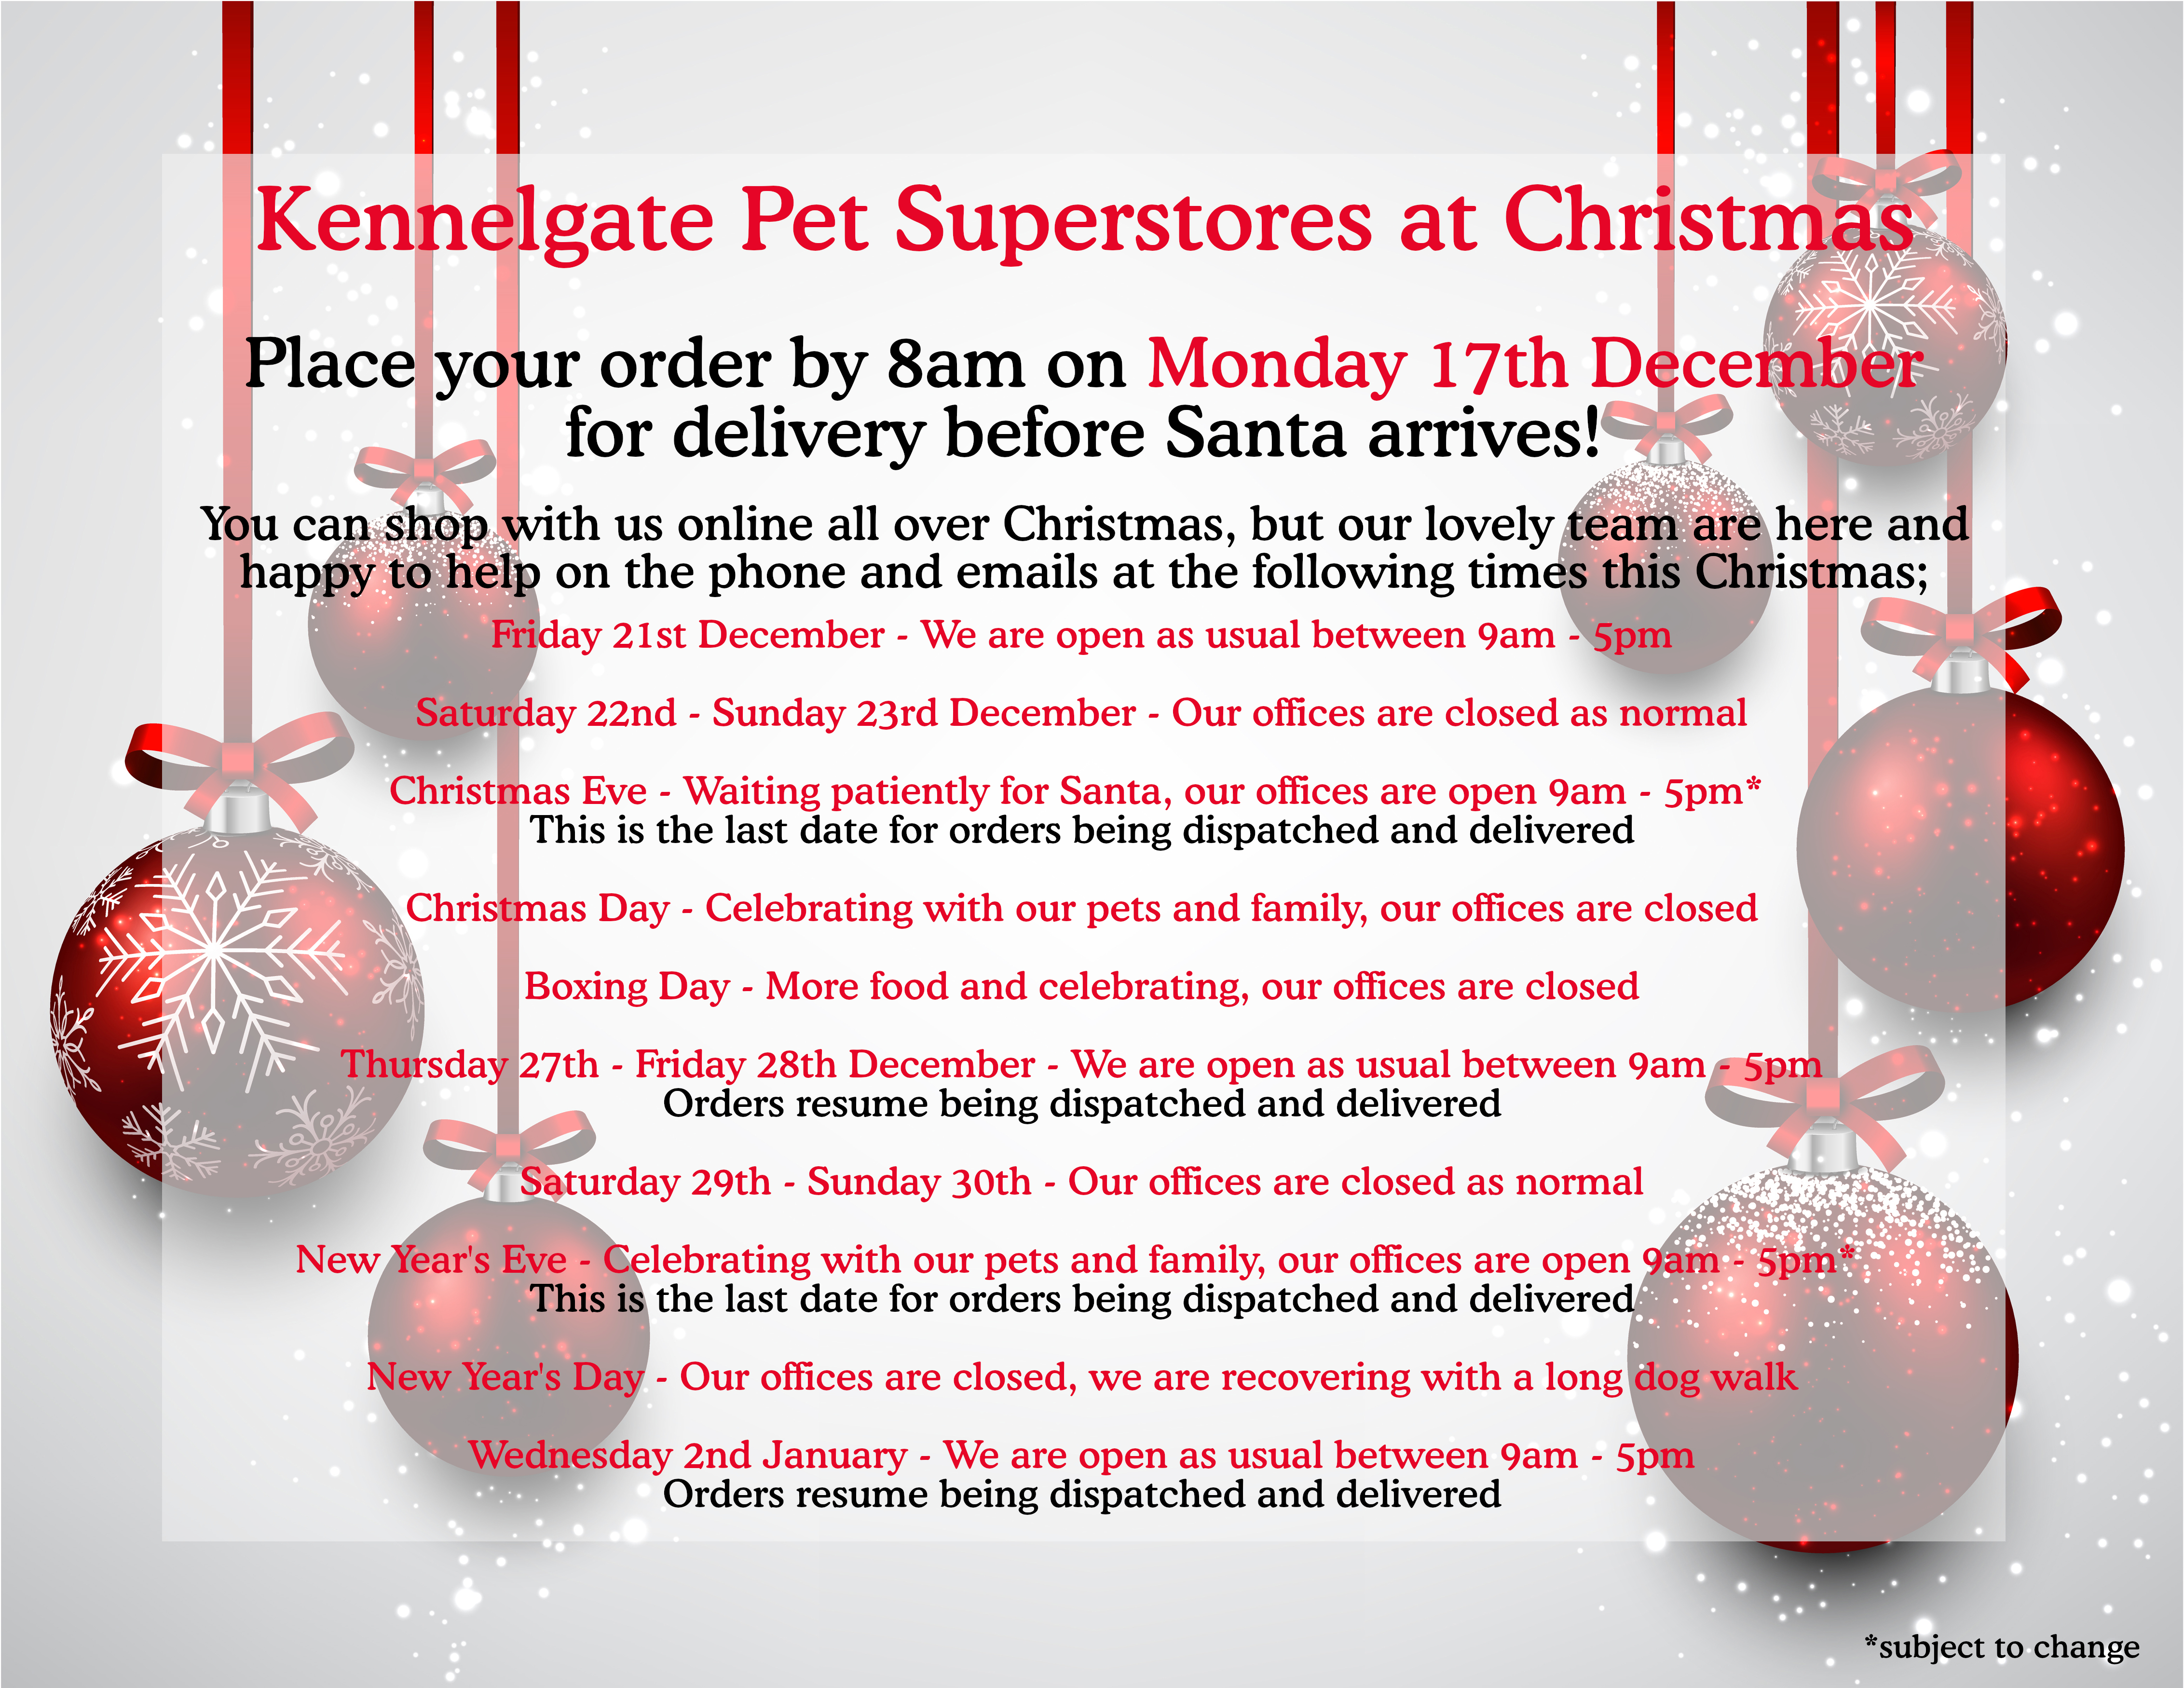 adc795c66c1c Kennelgate Pet Superstores Customer Service Team Christmas Opening Times   Delivery  Information